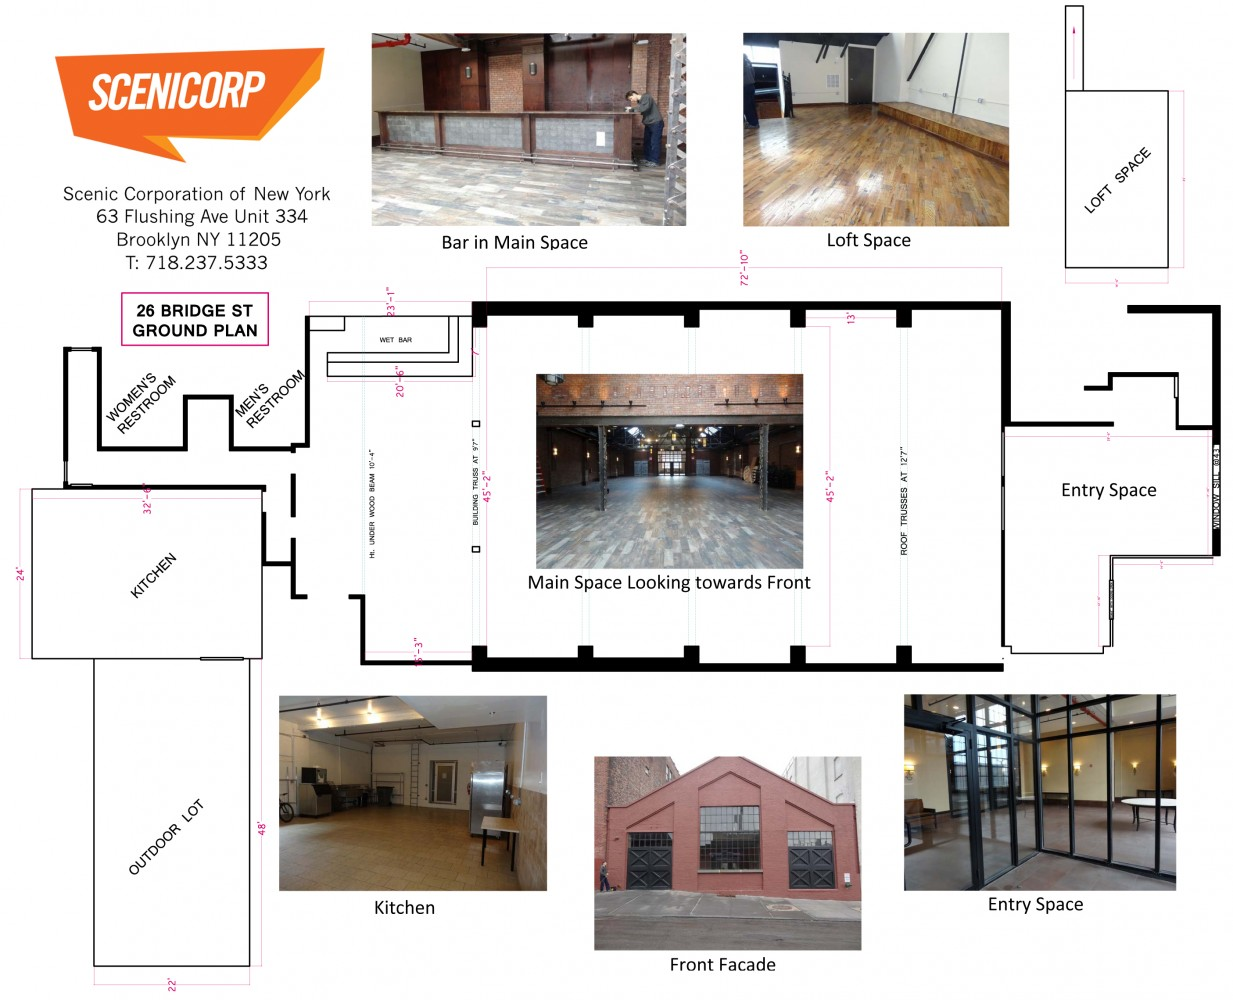 A Scenicorp Site Survey - layout of event venue space with scaled dimensions and build requirements